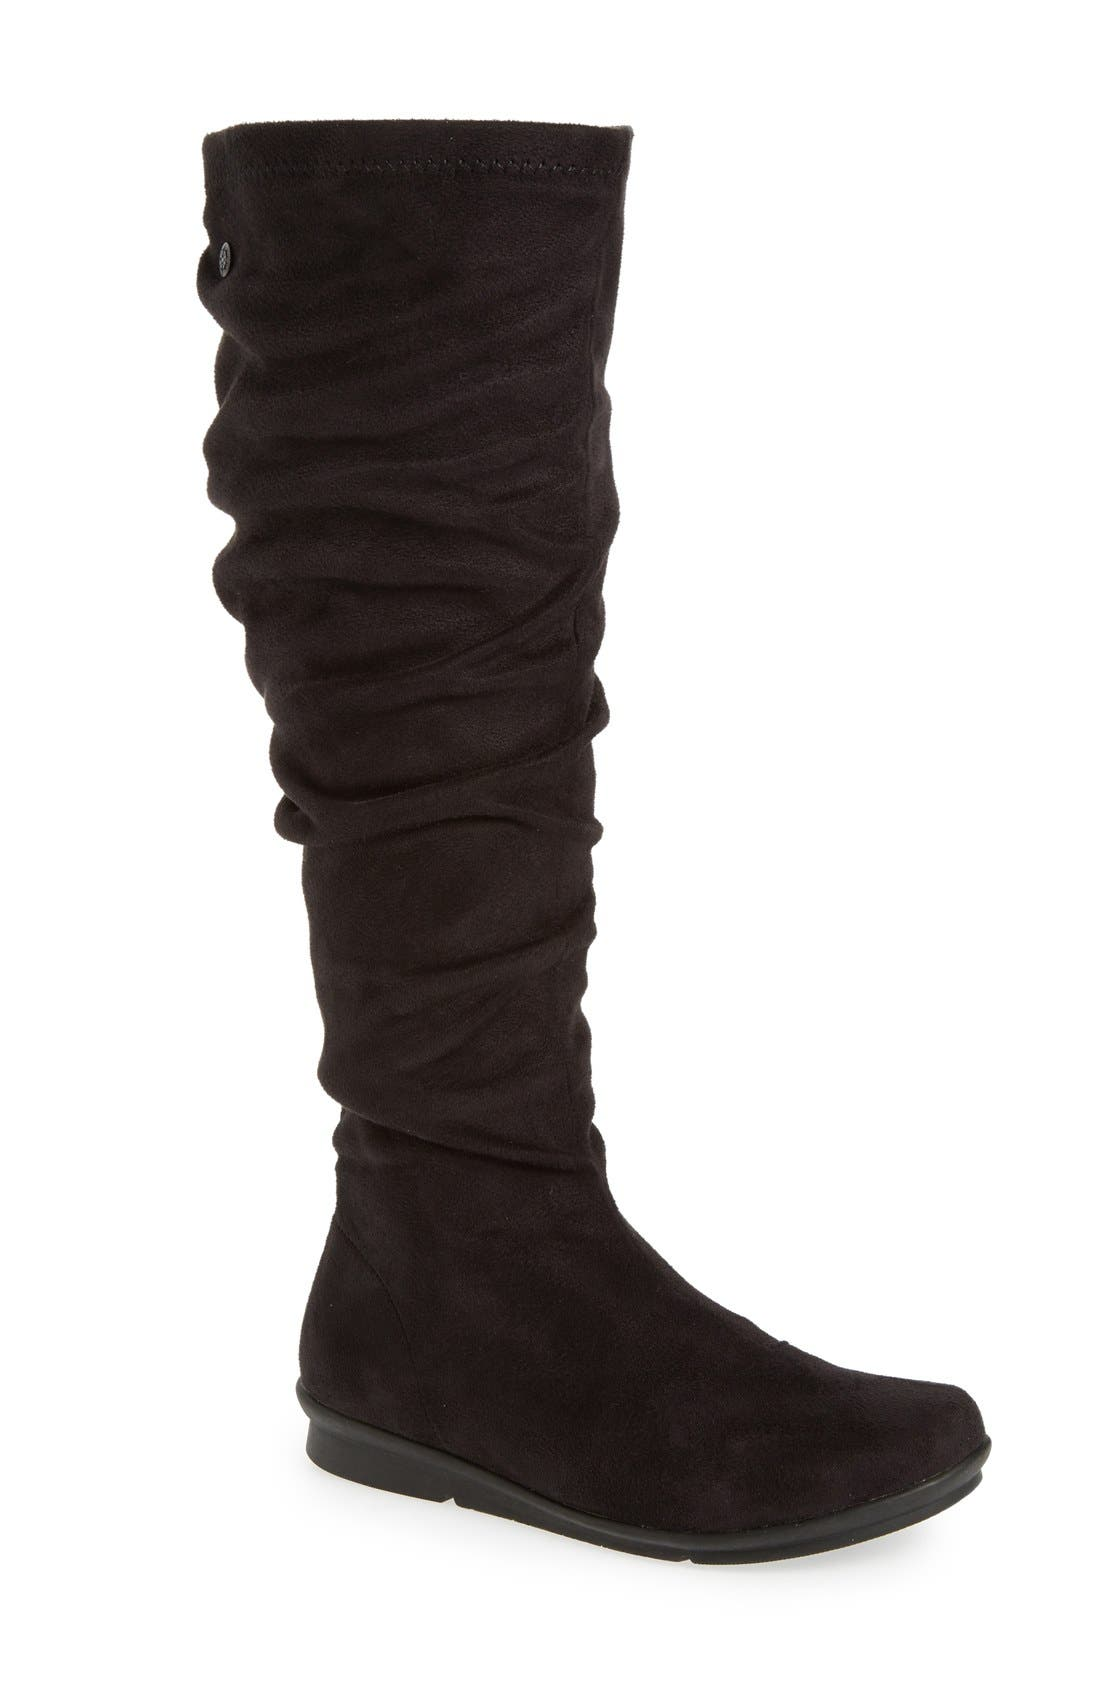 Alternate Image 1 Selected - Bussola 'Creta' Water Resistant Slouchy Knee-High Boot (Women)